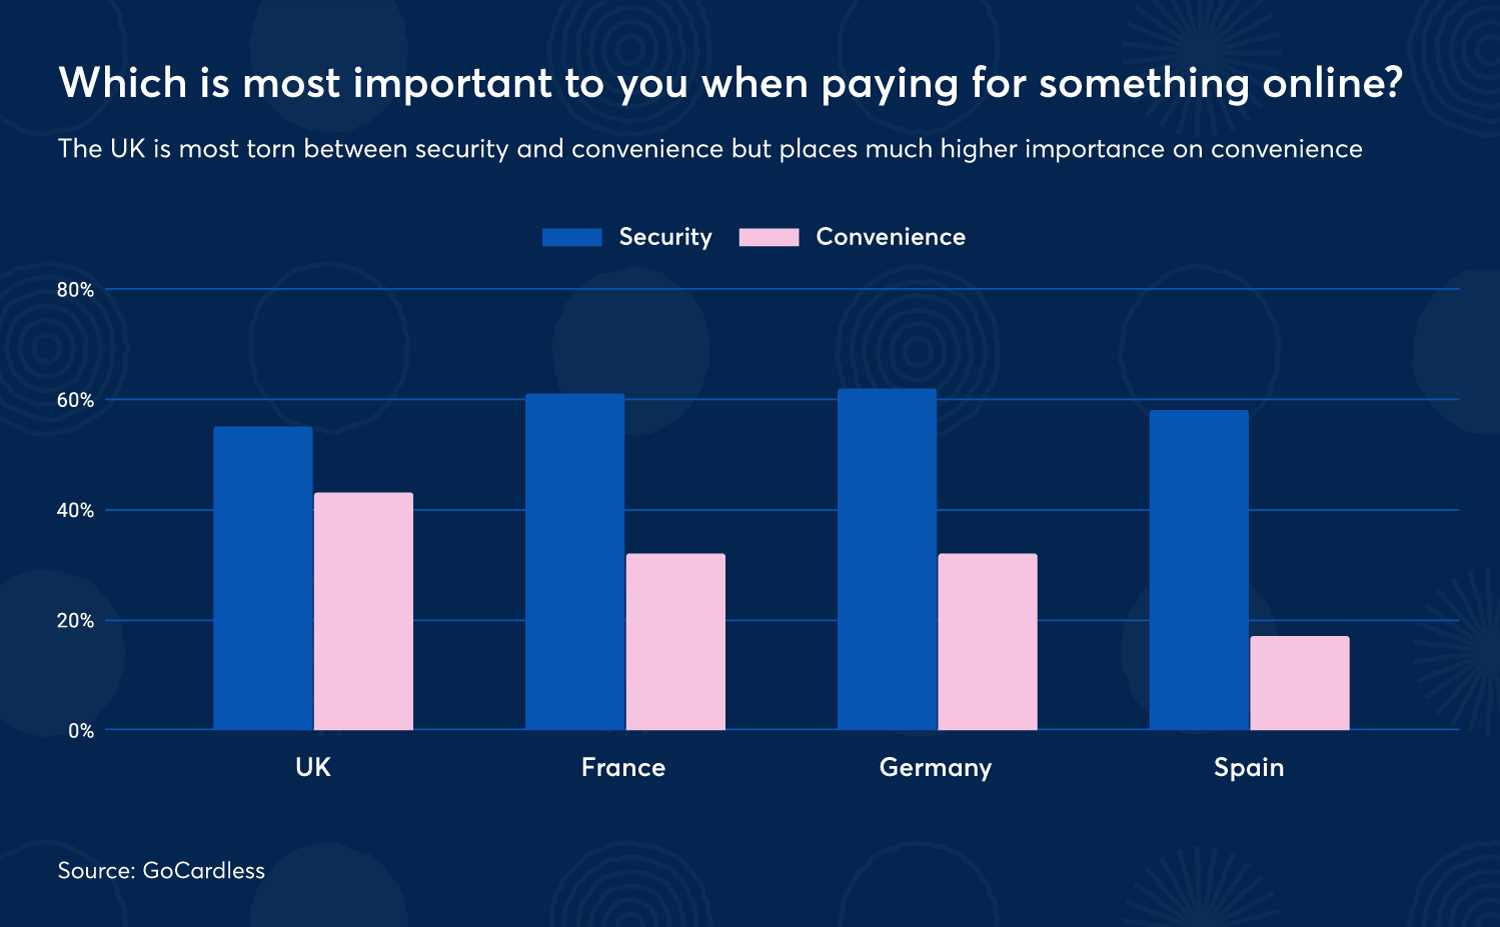 Which is most important to you when paying for something online?